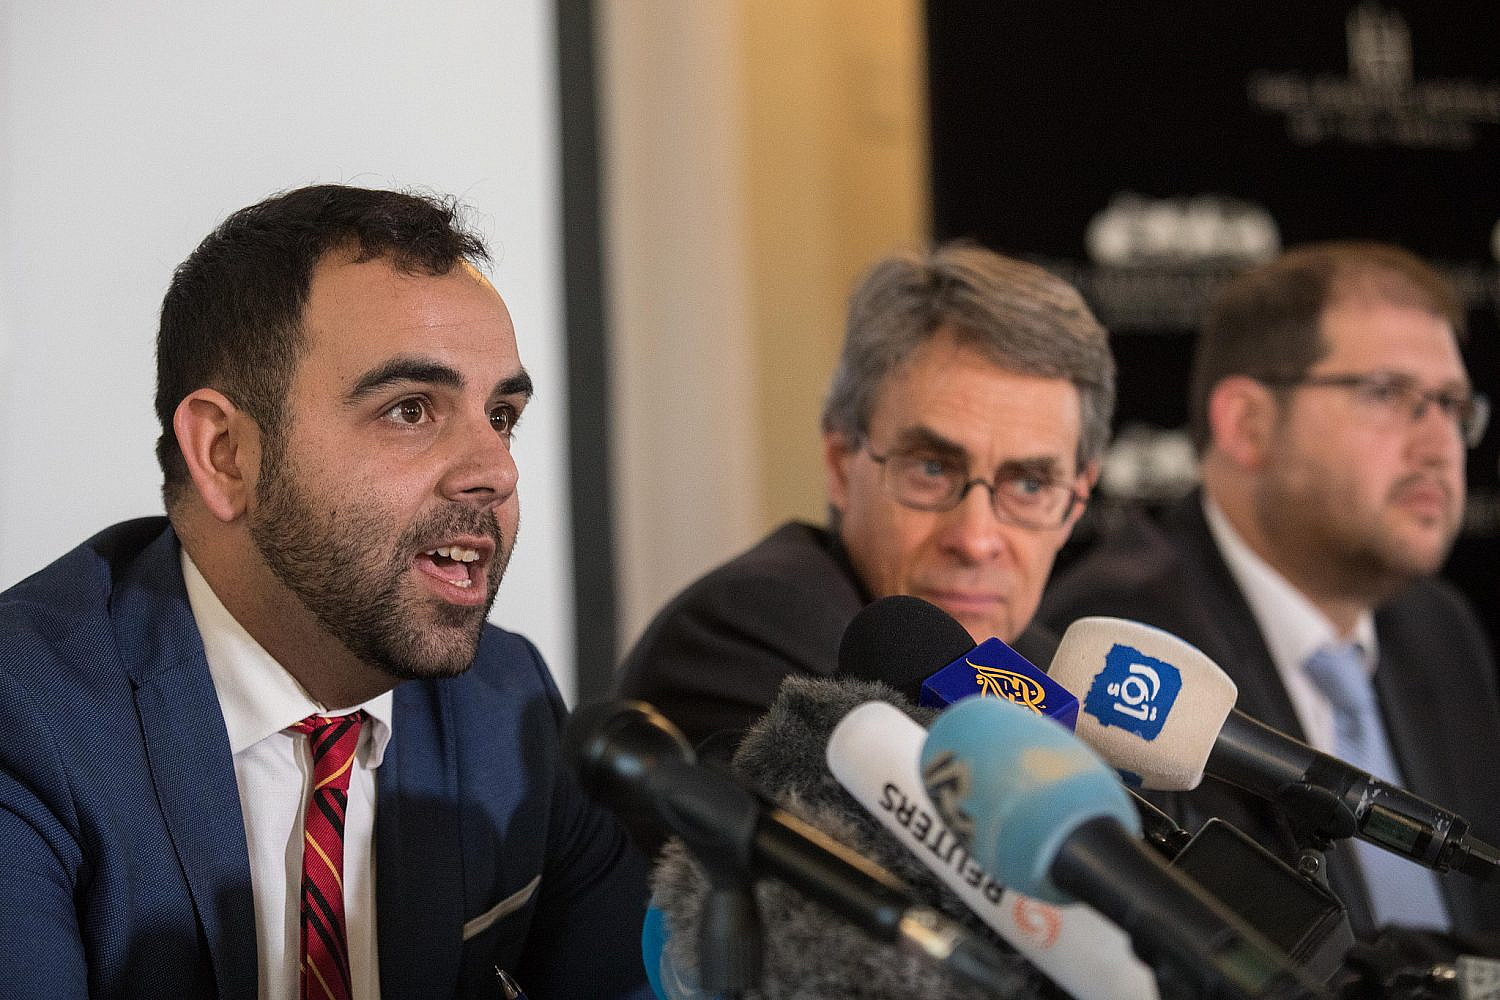 Omar Shakir, Human Rights Watch's Israel-Palestine director, speaks during a press conference in Jerusalem ahead of his deportation from Israel, Nov. 24, 2019. (Olivier Fitoussi/Flash90)